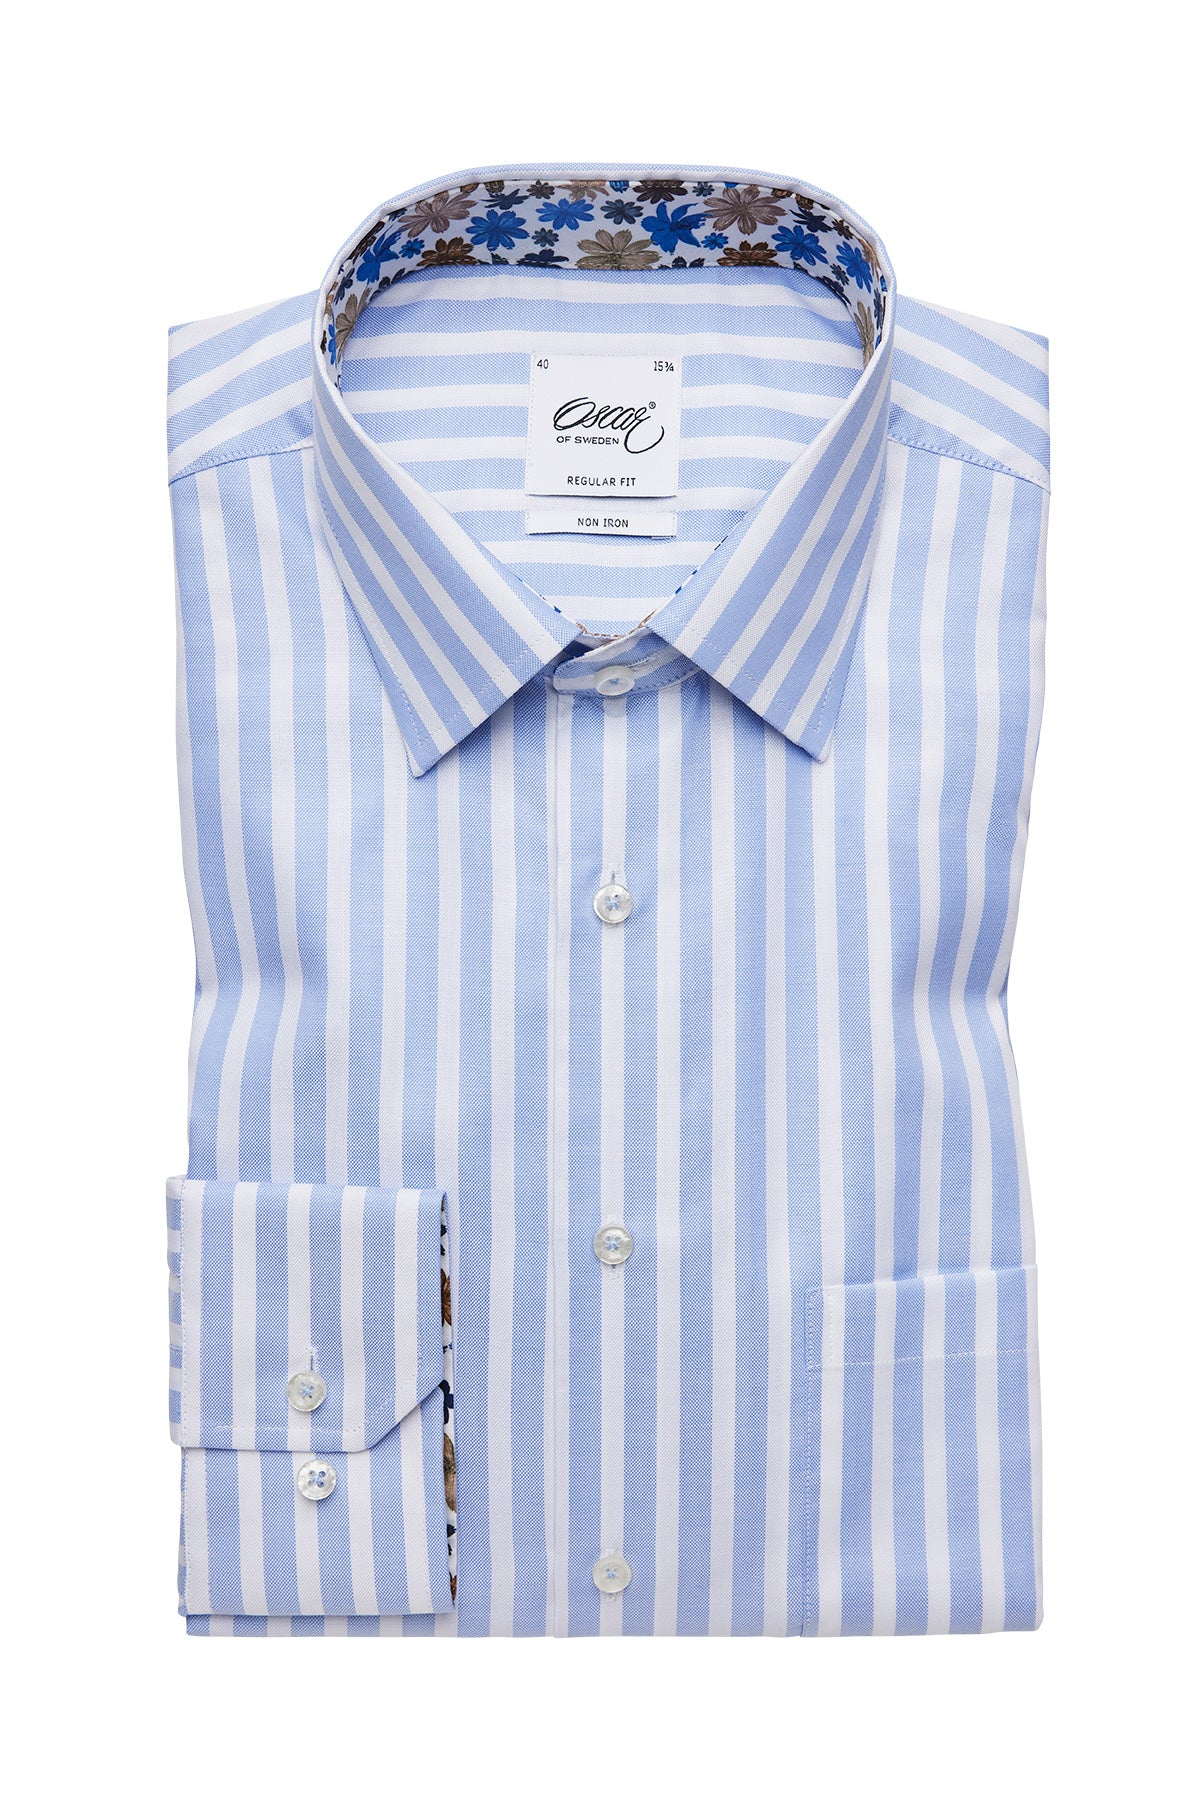 Light blue striped regular fit shirt with contrast details